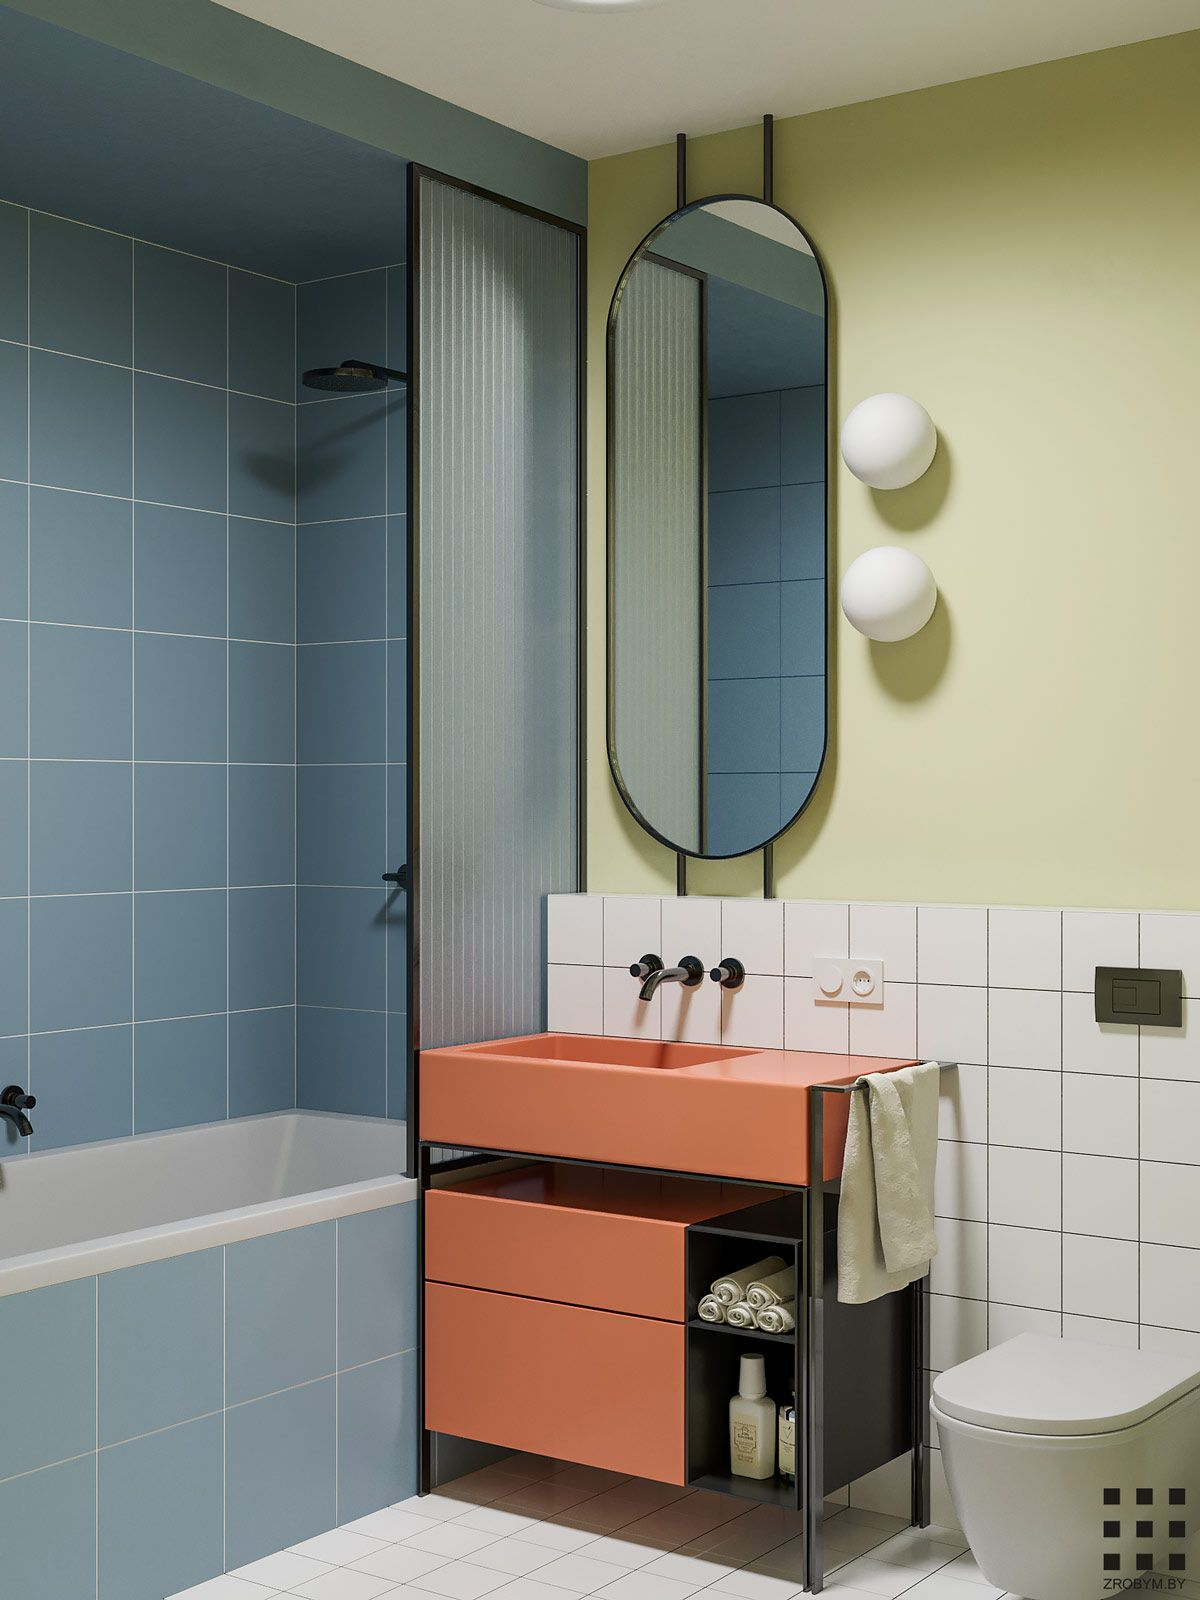 Bathroom 1 Renovation In 2019 Bathroom Interior Bathroom Colors